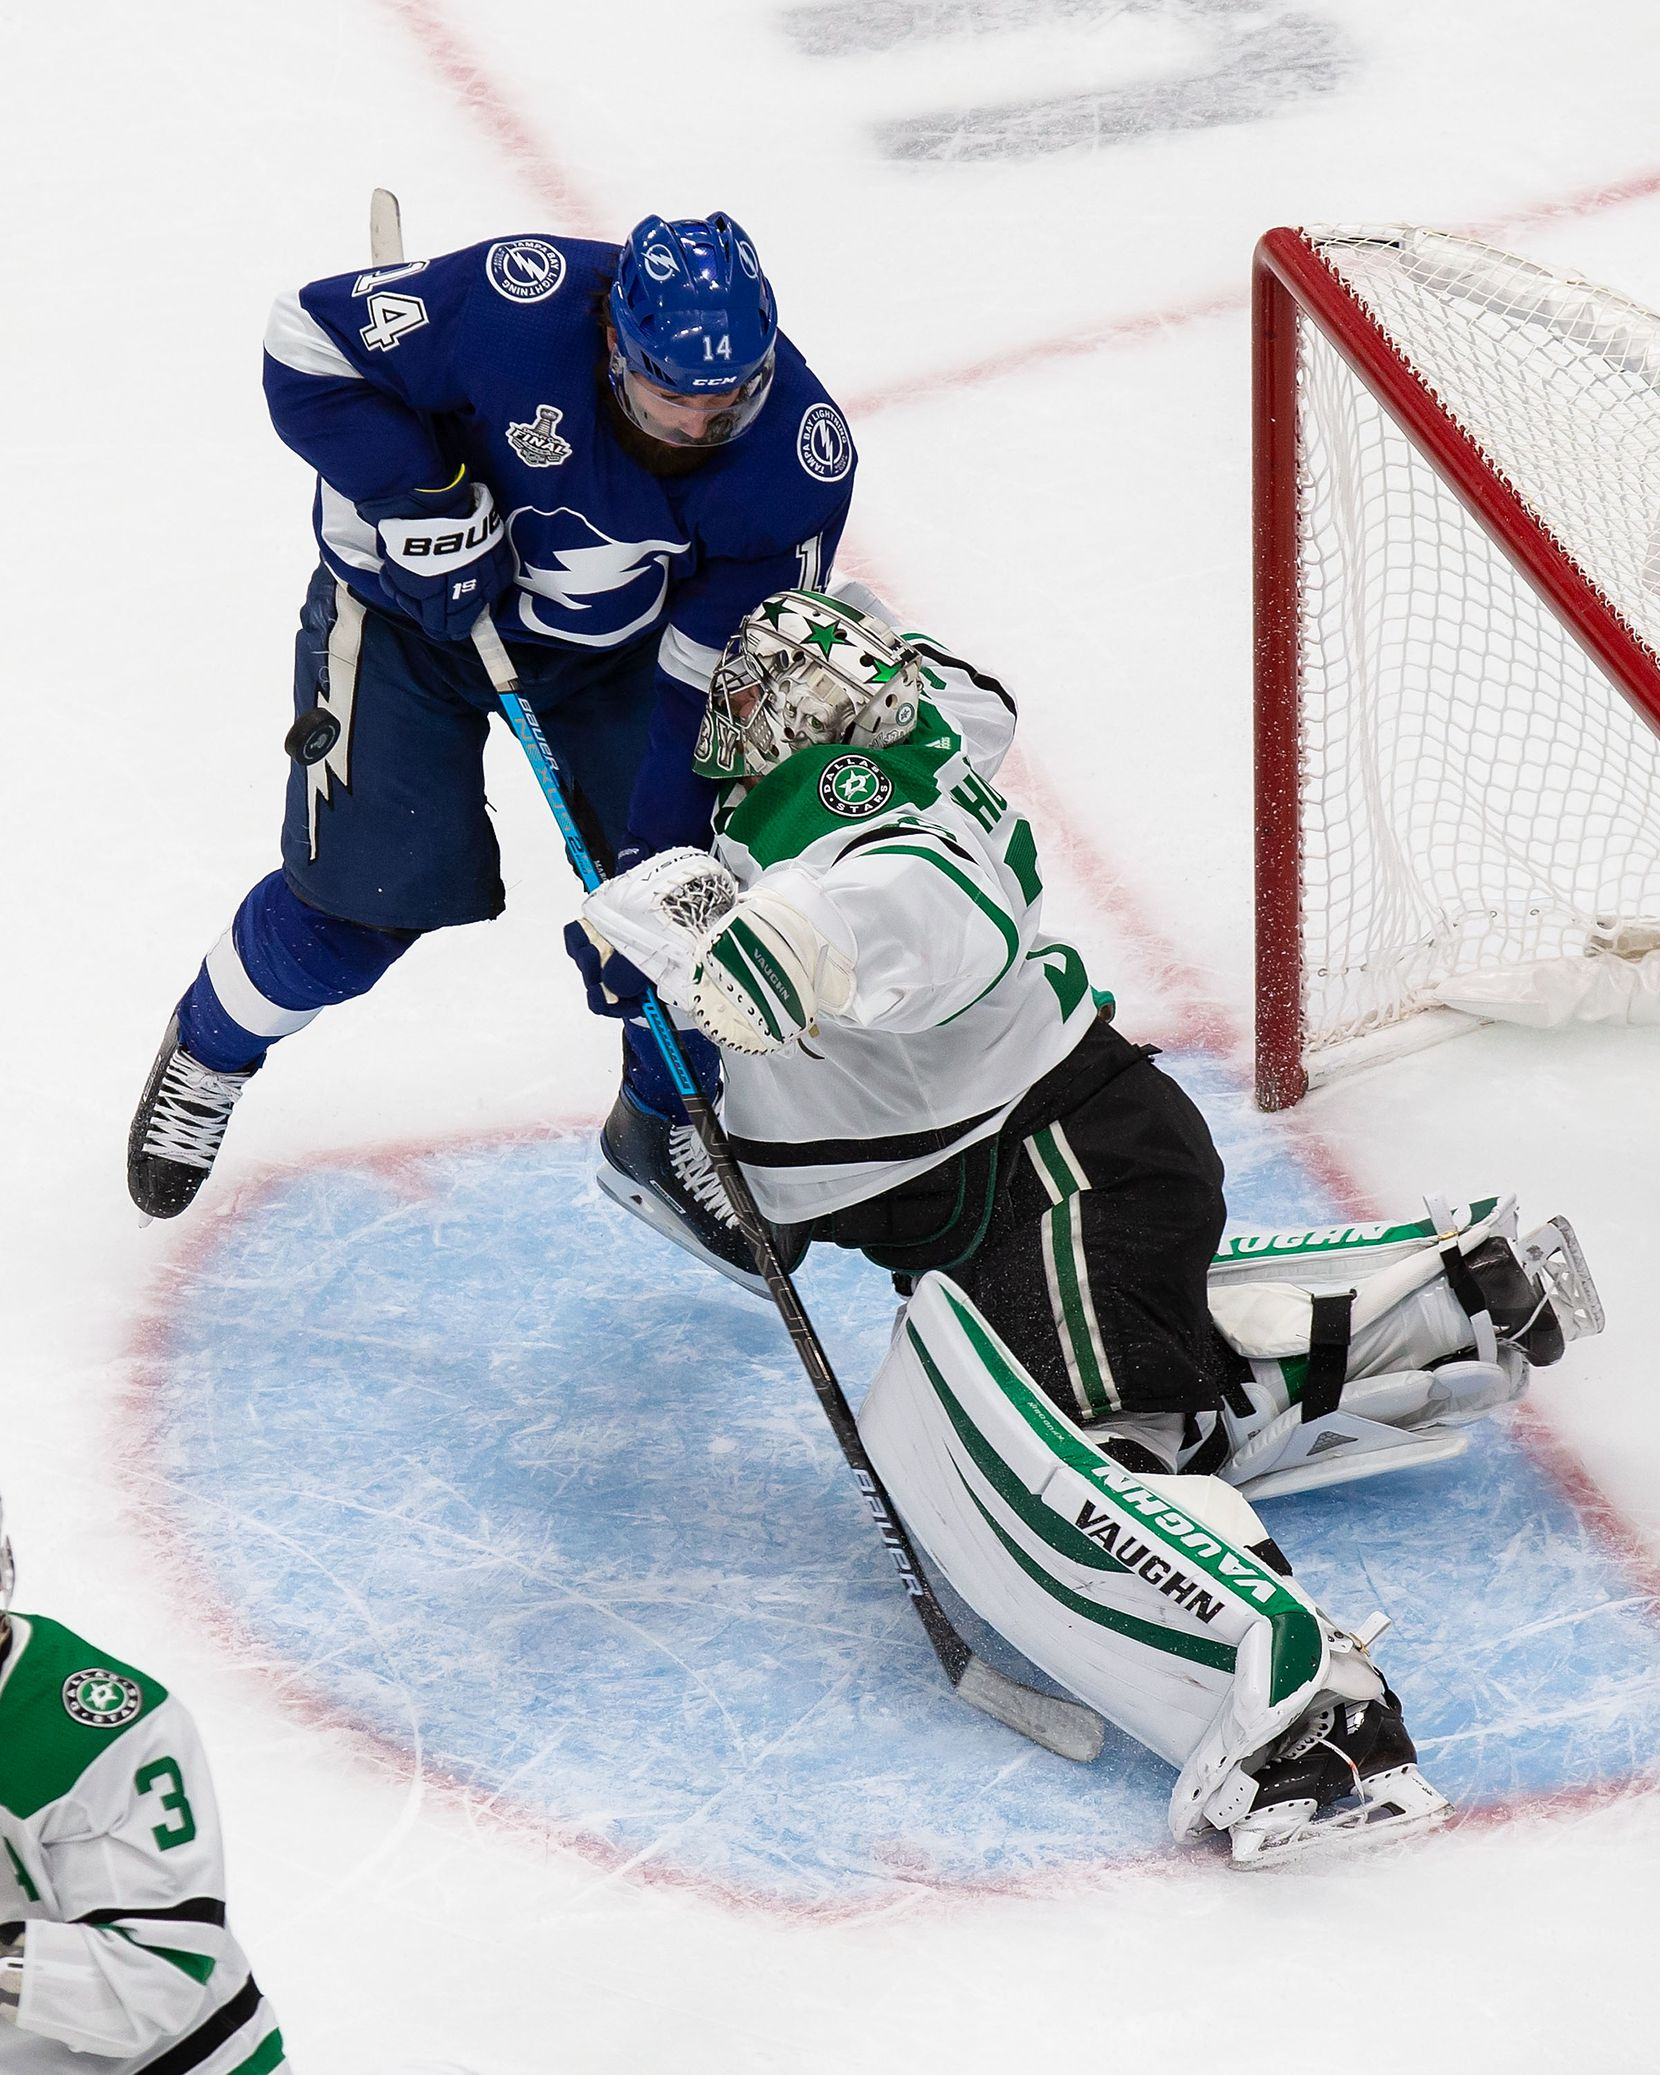 Goaltender Anton Khudobin (35) of the Dallas Stars stops Pat Maroon (14) of the Tampa Bay Lightning during Game Two of the Stanley Cup Final at Rogers Place in Edmonton, Alberta, Canada on Monday, September 21, 2020. (Codie McLachlan/Special Contributor)